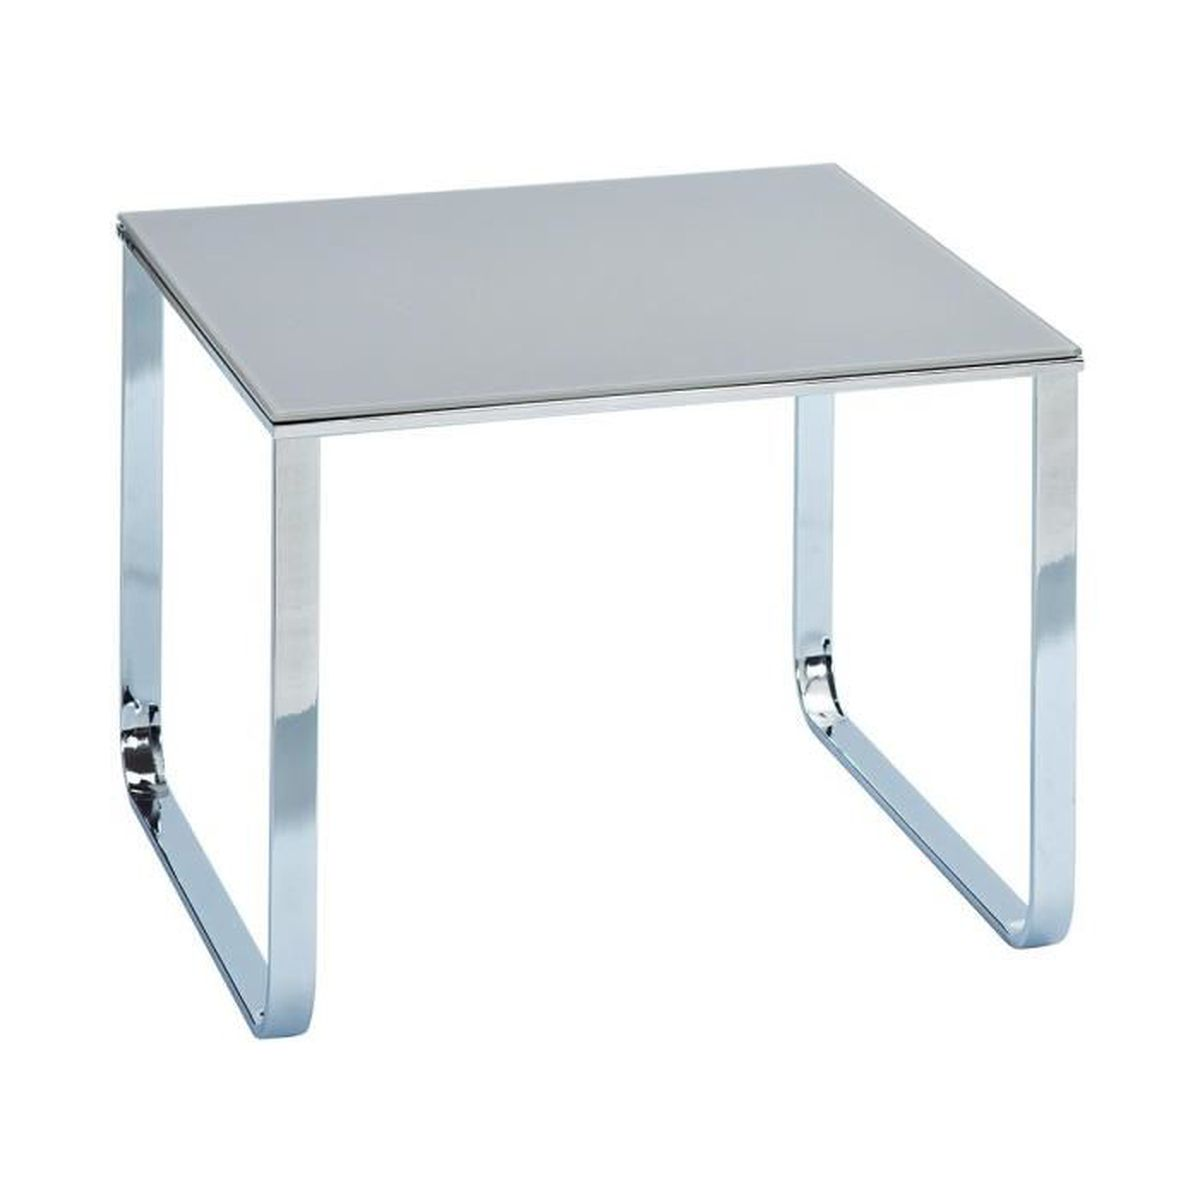 table Grise Table Basse Achat basse Vente Samira YyIgbv7f6